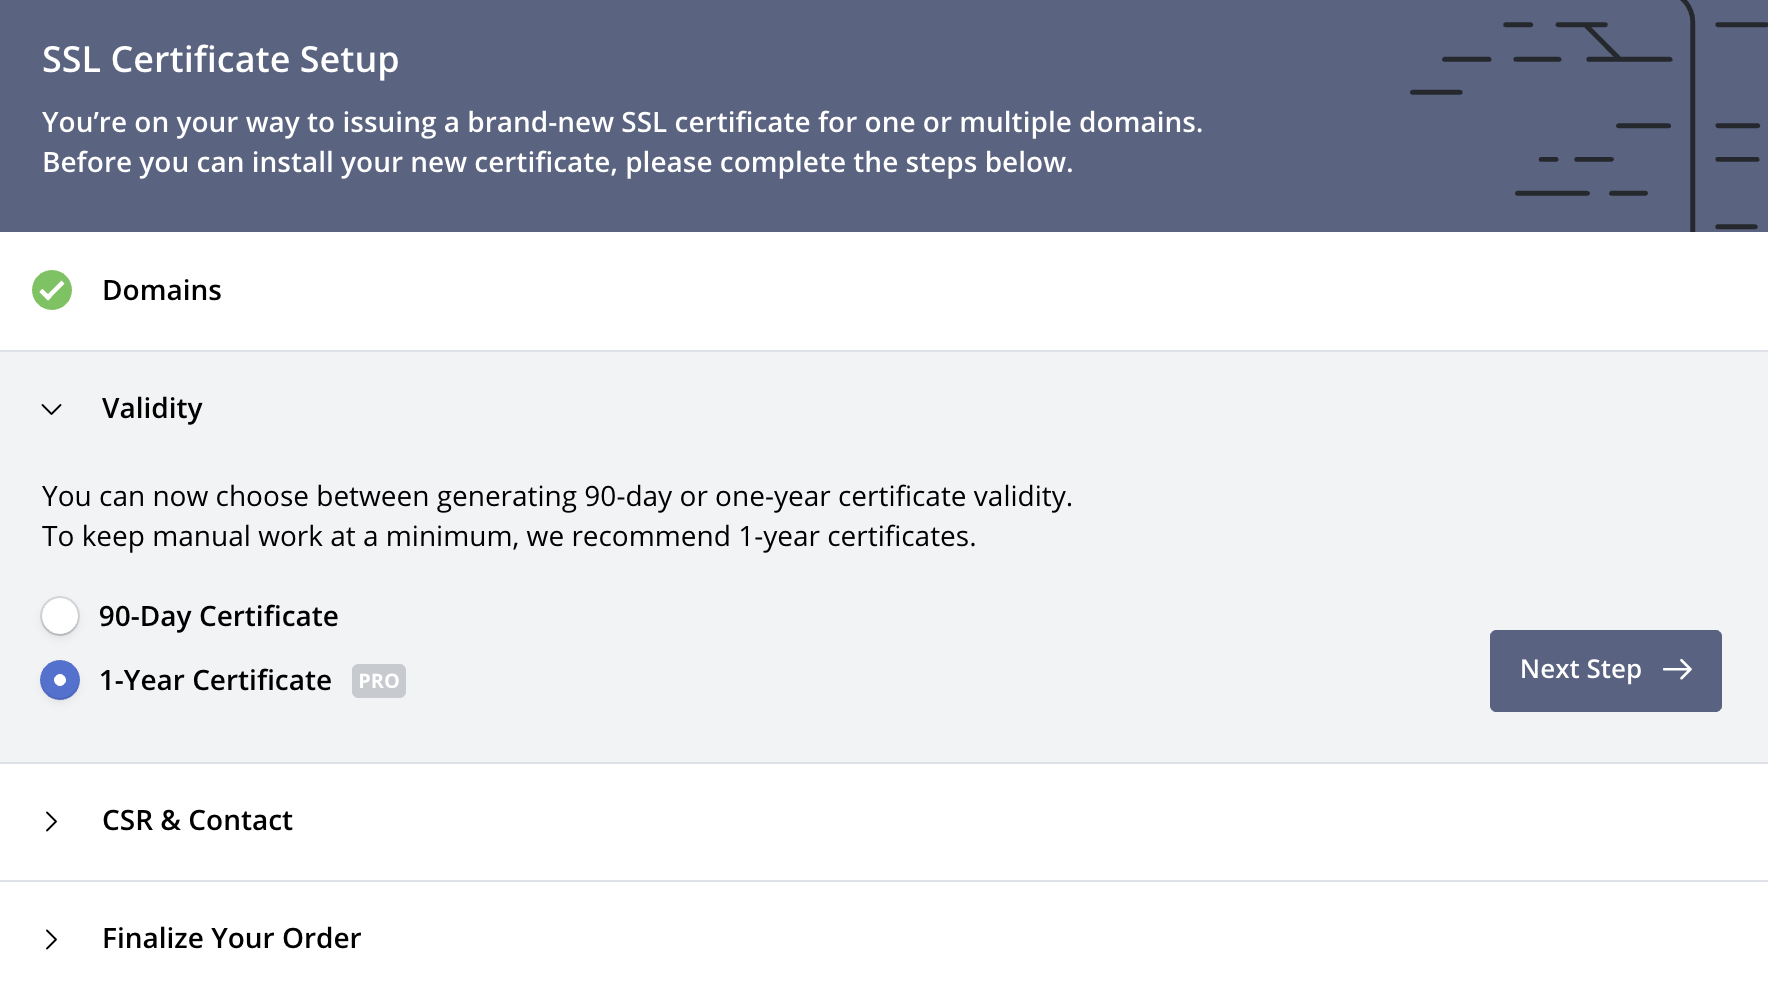 Create Certificate: Validity